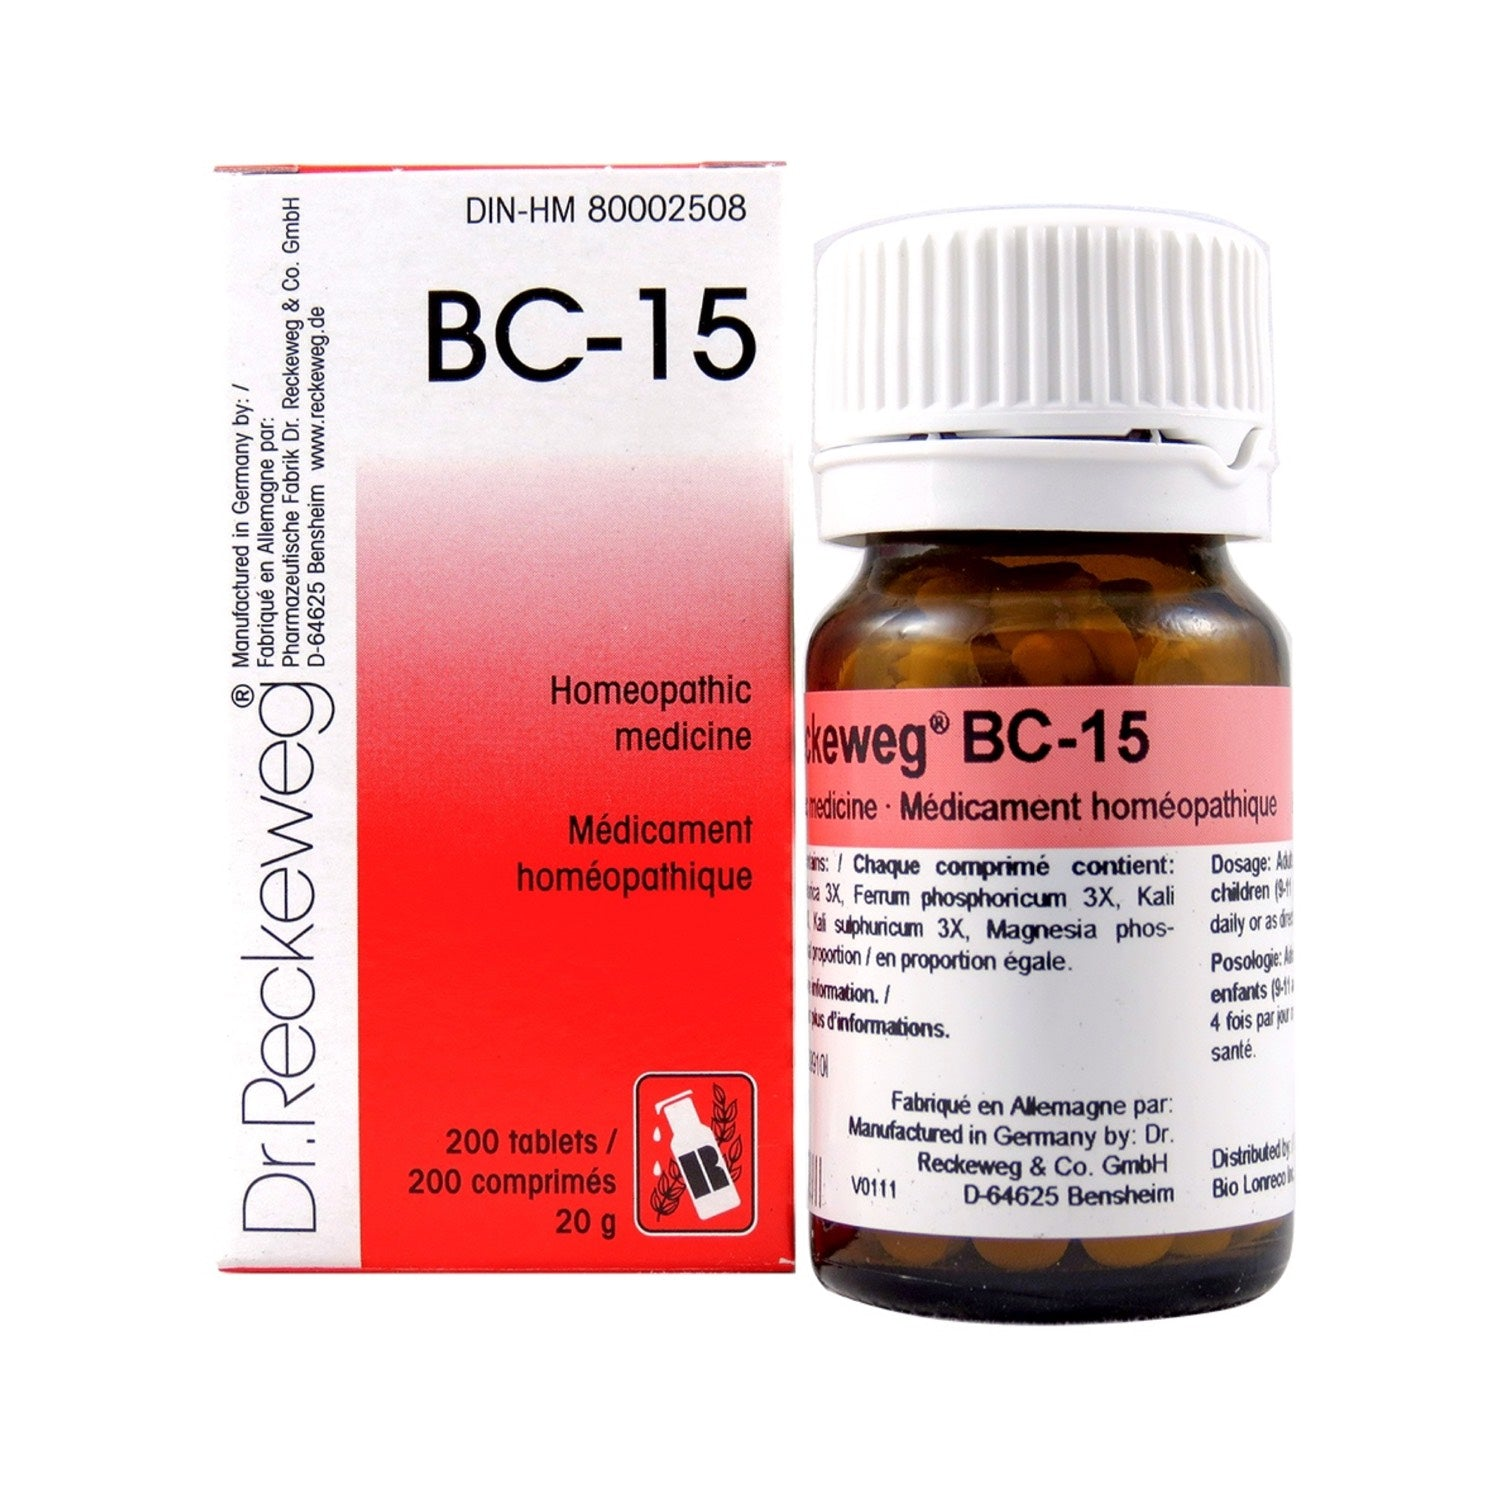 BC-15 Homeopathic medicine – Combination salt  200 tablets (20 g)